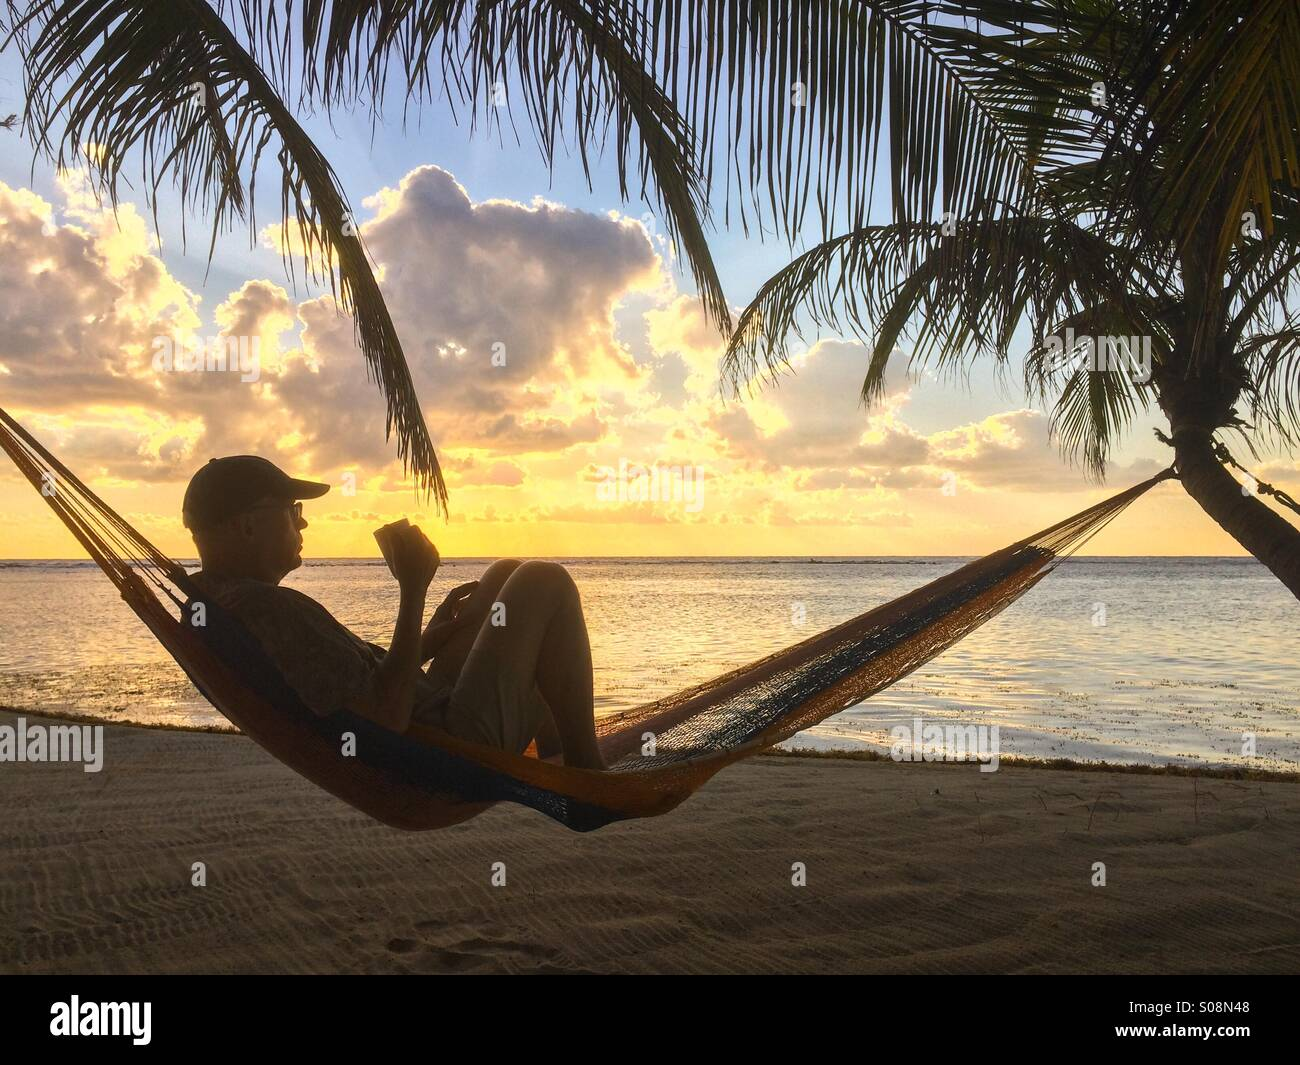 Man drinking coffee at the beach in hammock, Caribbean Sea, Belize - Stock Image